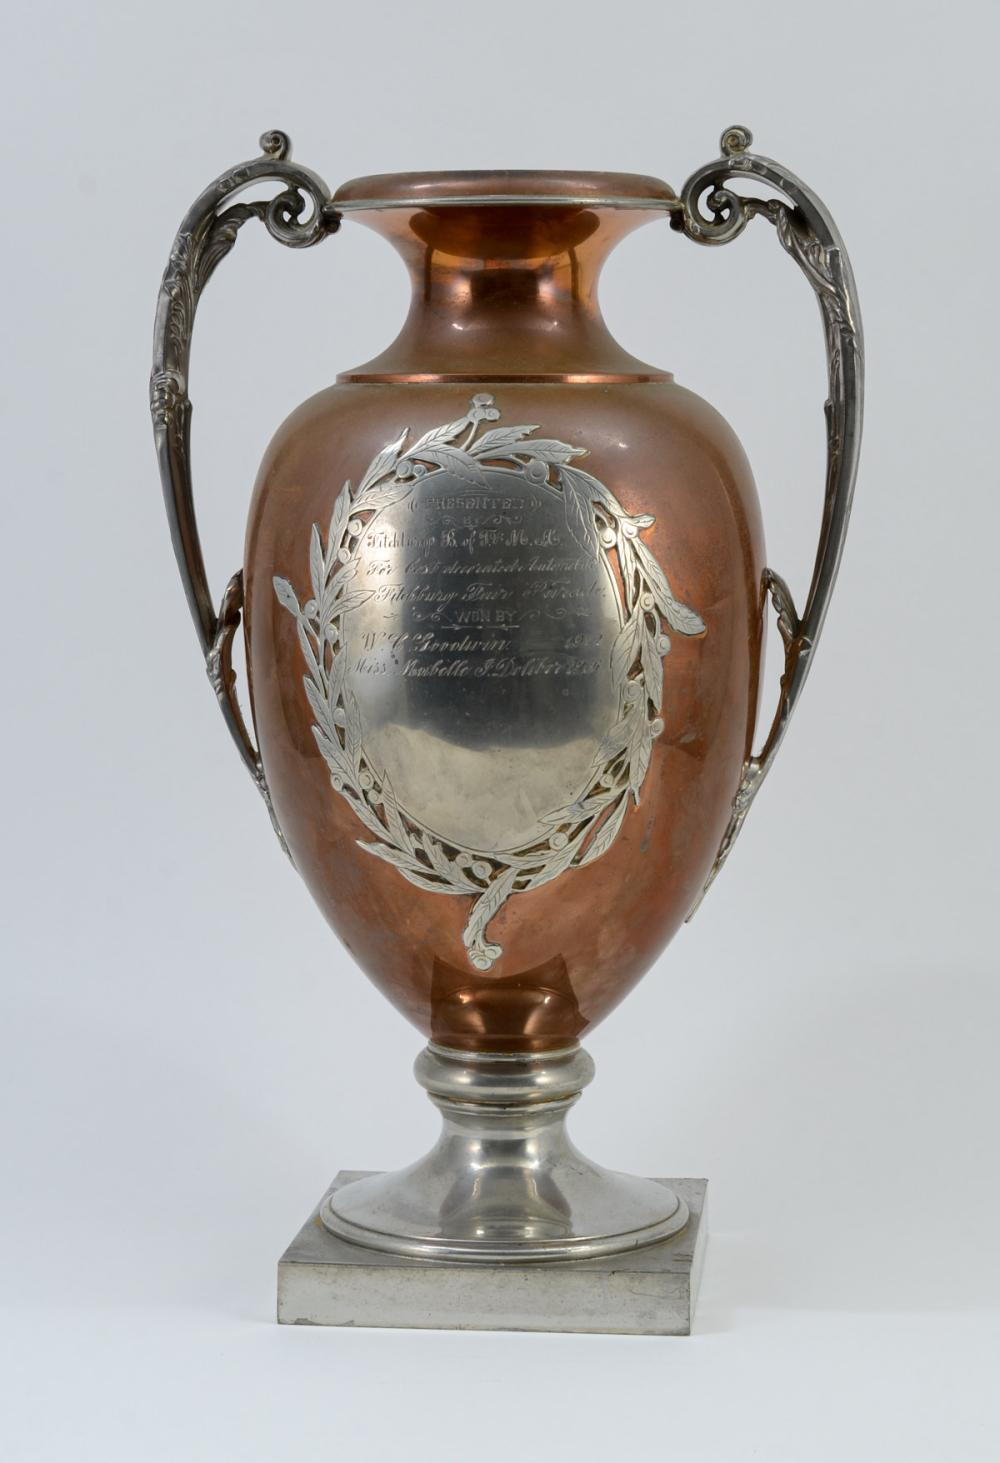 1912 Pairpoint Parade Trophy